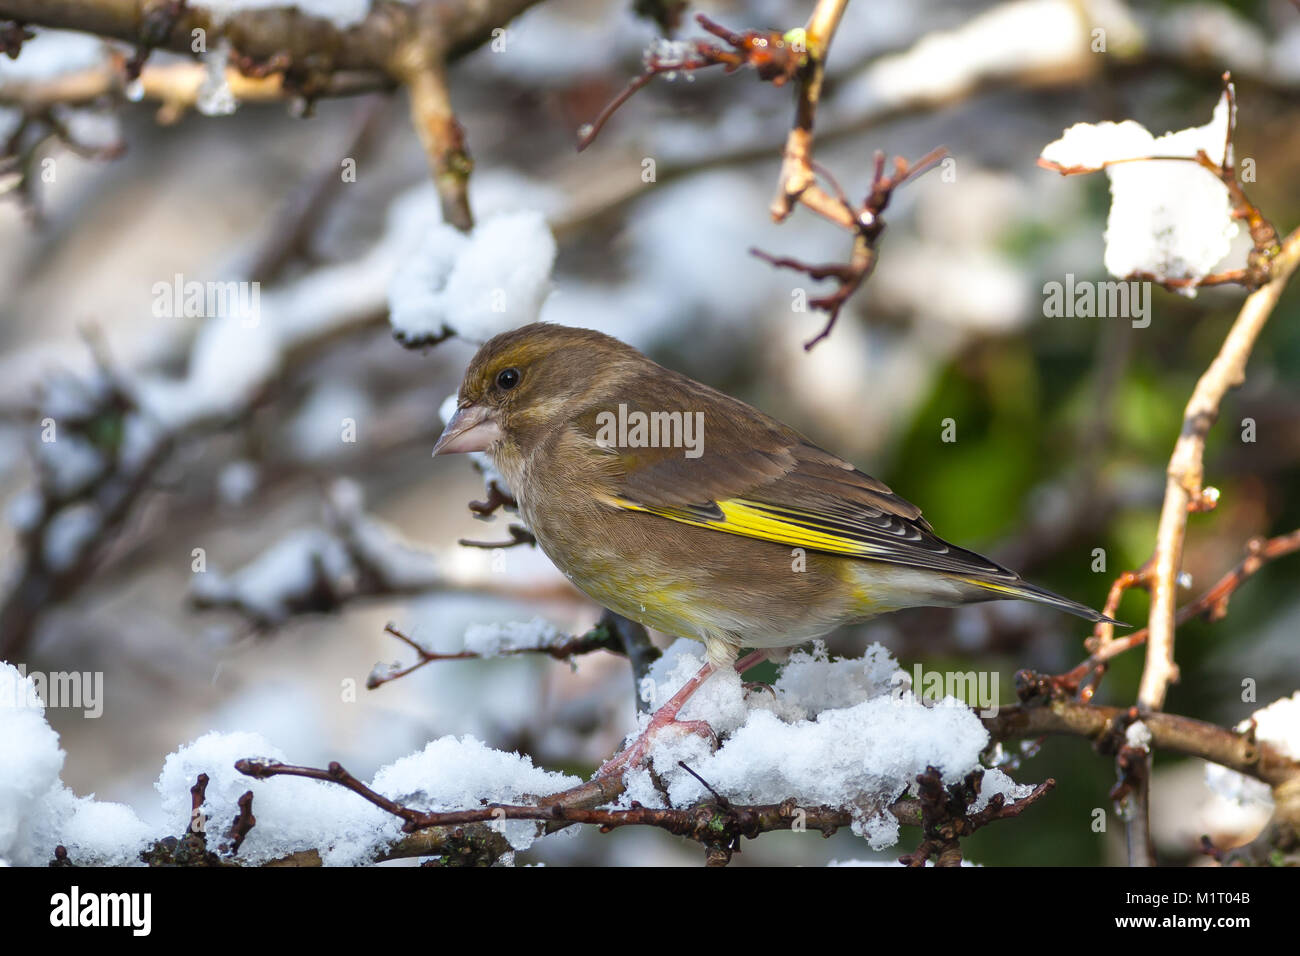 Adult male Greenfinch, Carduelis chloris, perched in tree branch in snow, UK - Stock Image